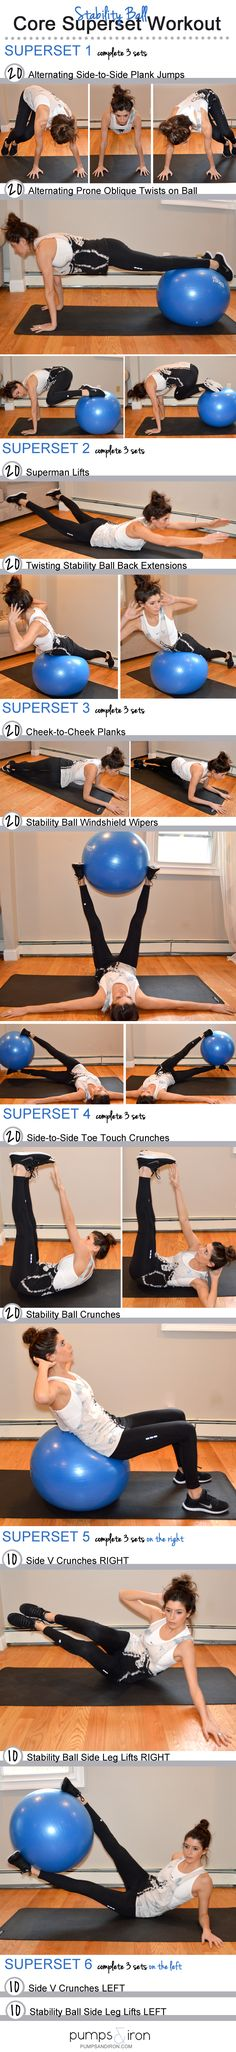 Stability Ball Superset Core Workout #strong #fitness